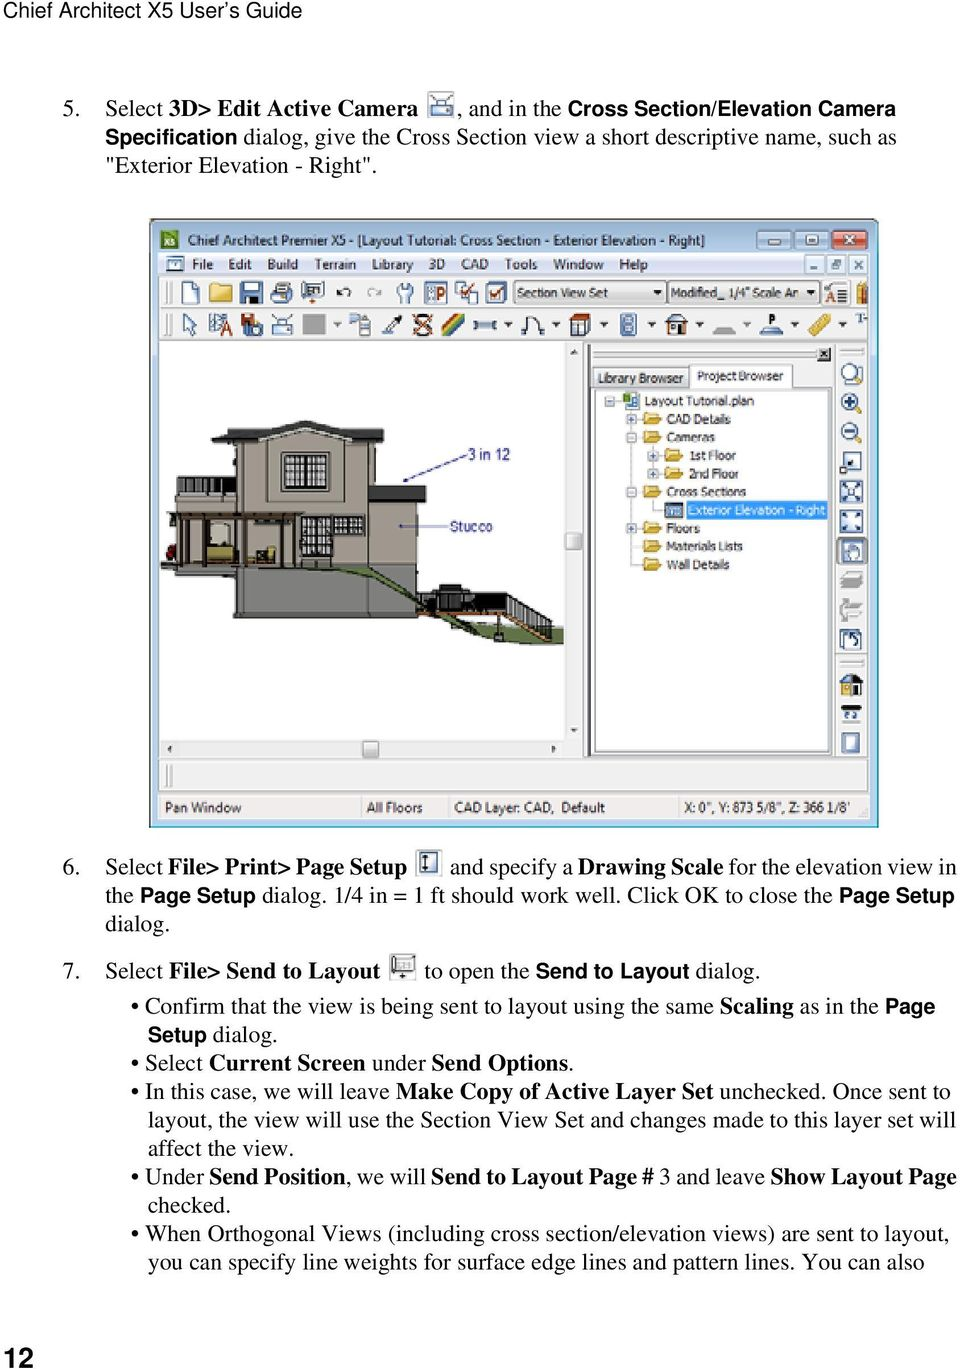 Select File> Print> Page Setup and specify a Drawing Scale for the elevation view in the Page Setup dialog. 1/4 in = 1 ft should work well. Click OK to close the Page Setup dialog. 7.